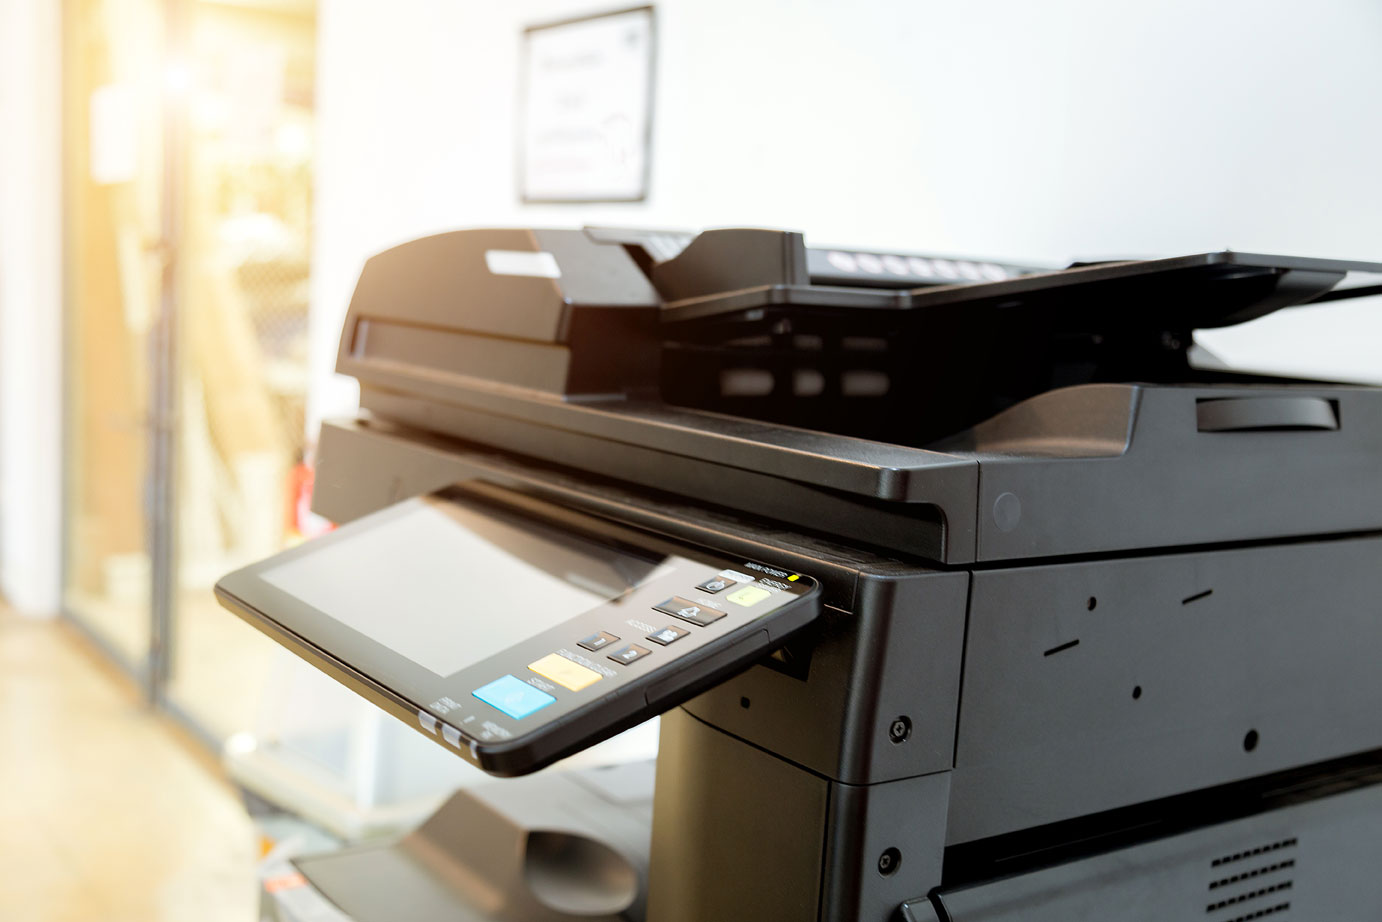 An Office Printer | As a Medical Equipment Parts Supplier in Houston, TX, We Can Also Provide Printers for Your Medical Facility